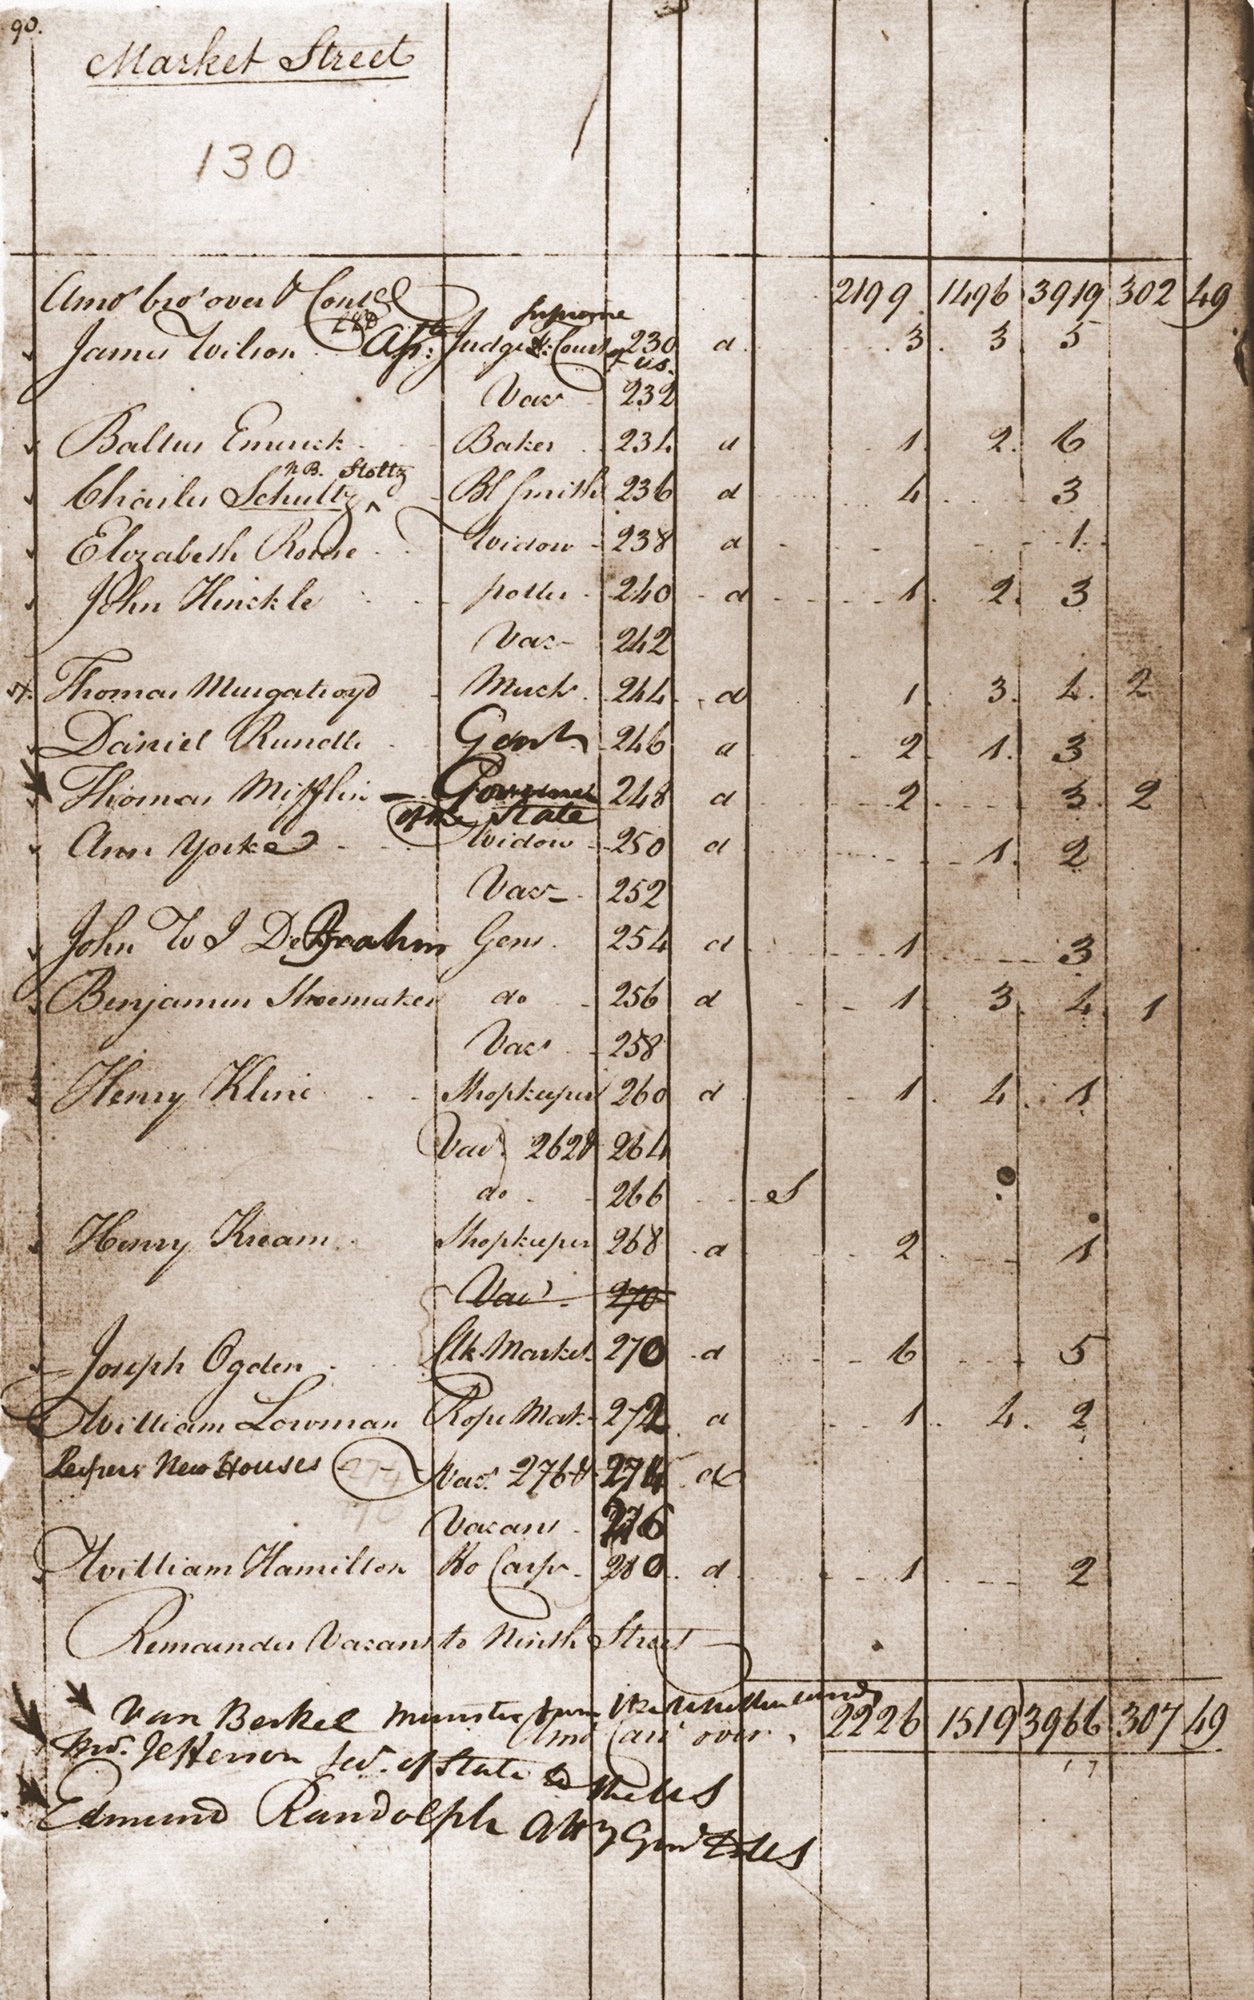 1790 Census Table